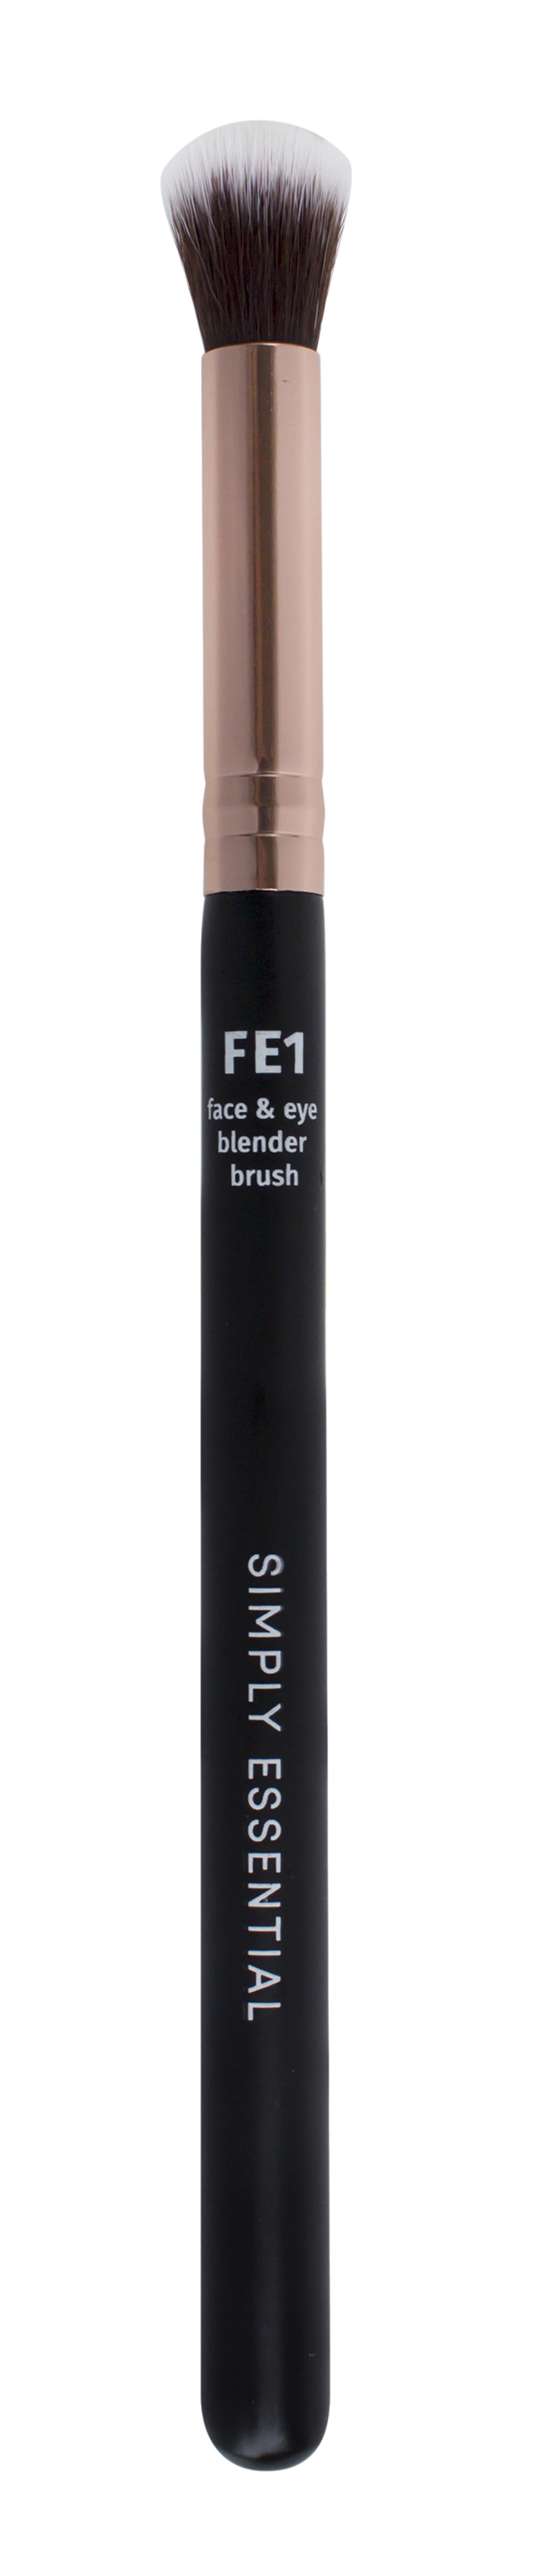 Simply Essential Face and Eye Shadow Blender